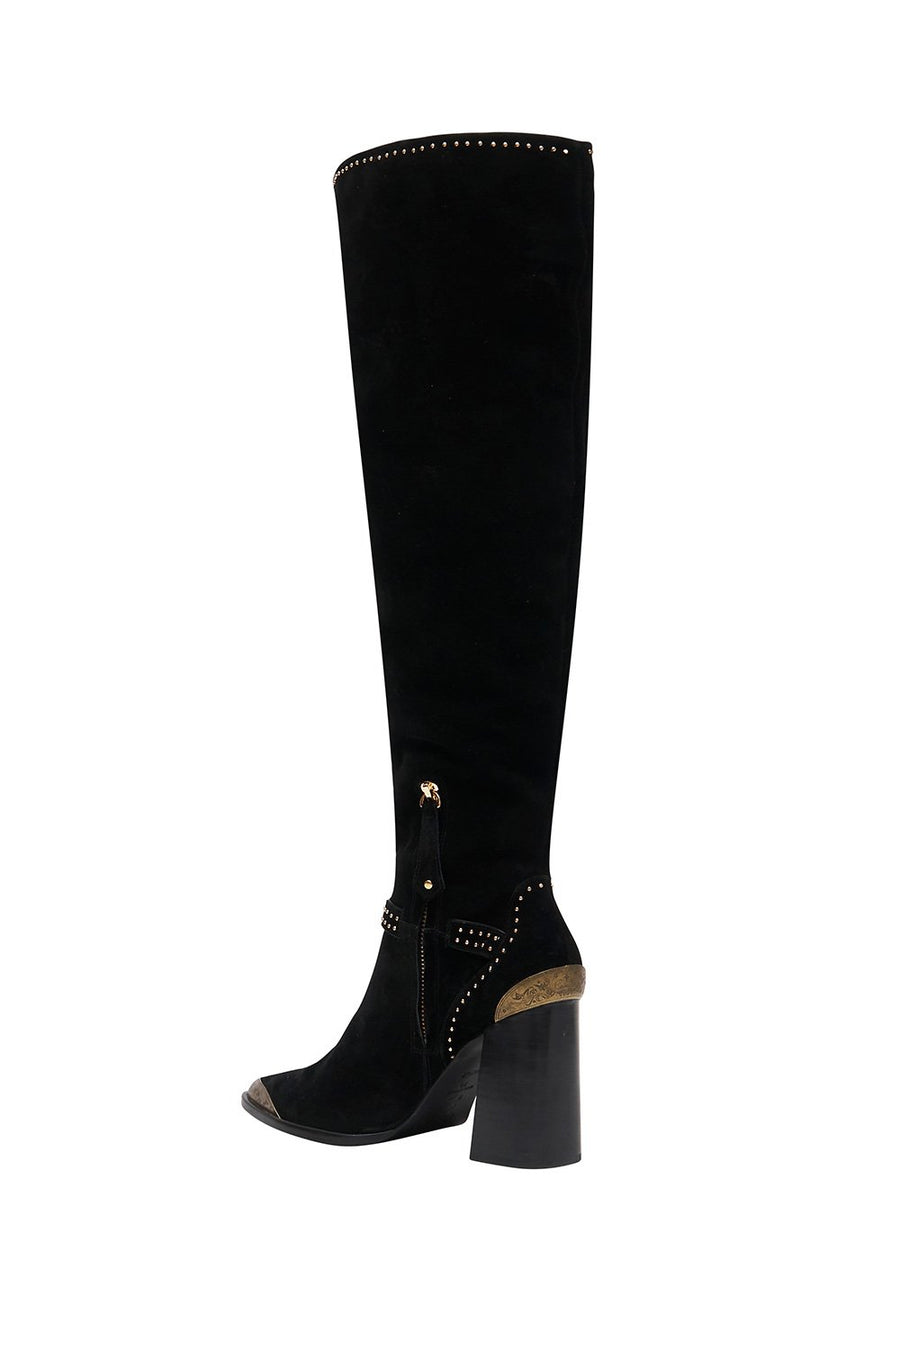 KNEE HIGH HEEL BUCKLE BOOT FLIGHT OF AMUN-RA